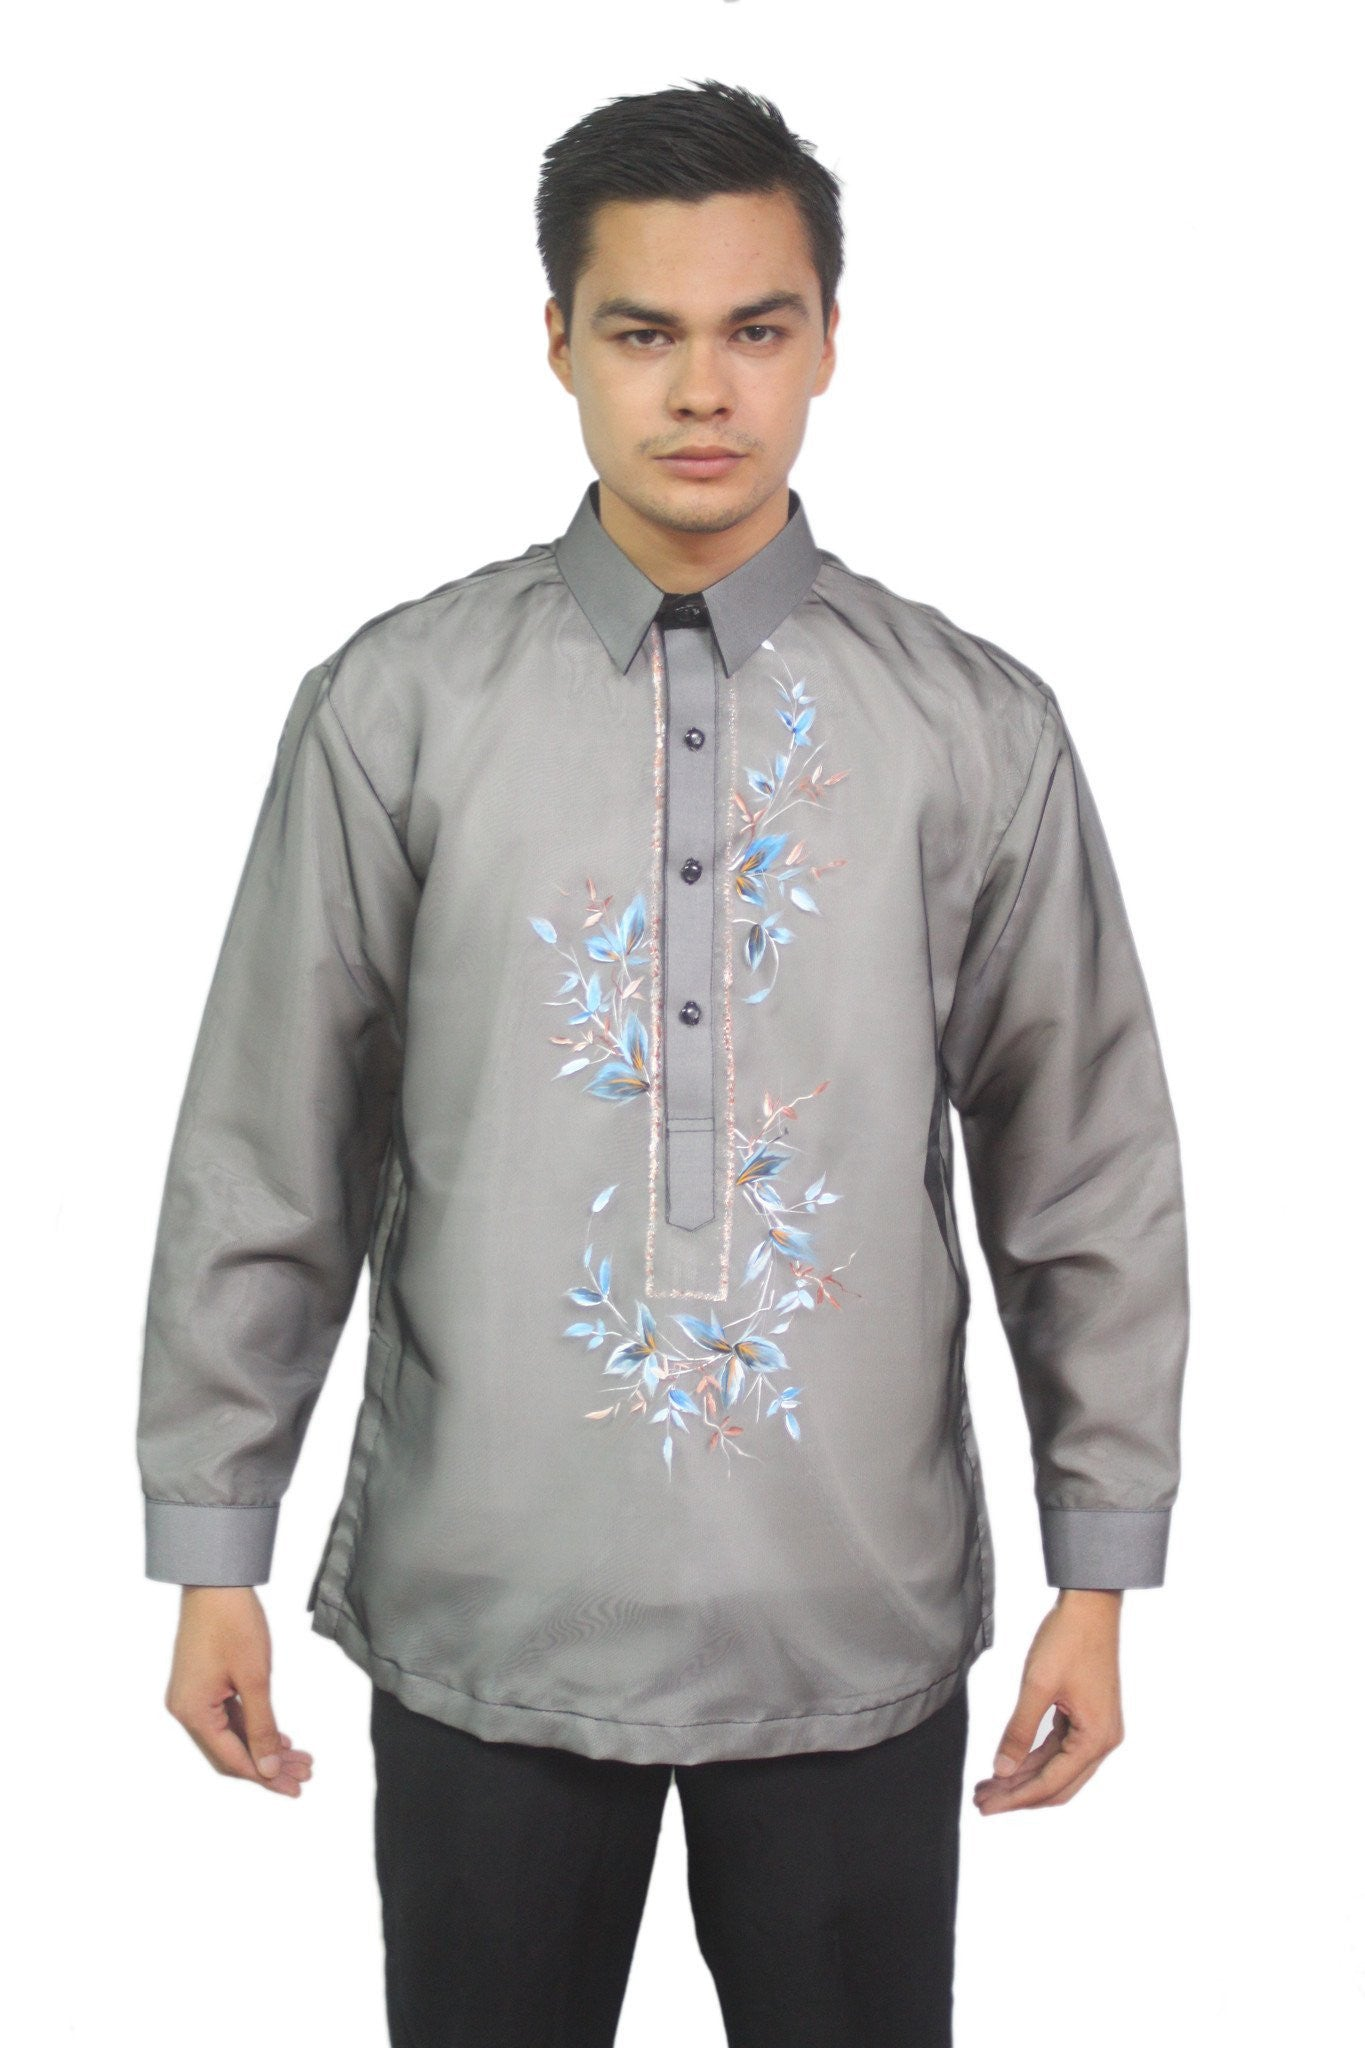 Quality Barong Tagalog Lowest Prices Top Service At Barong